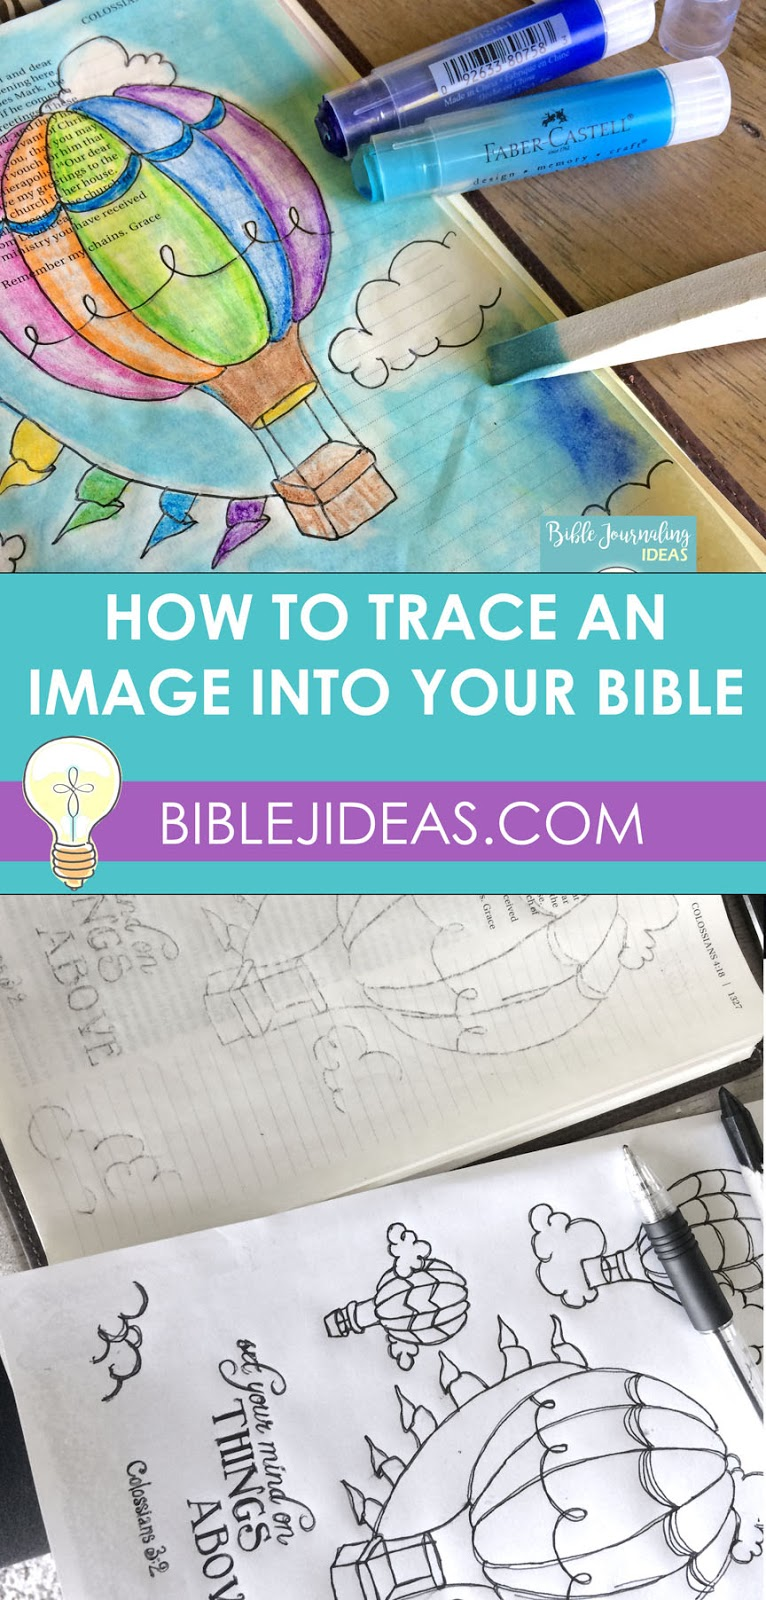 Bible Journaling Ideas: How To Trace An Image Into Your Bible